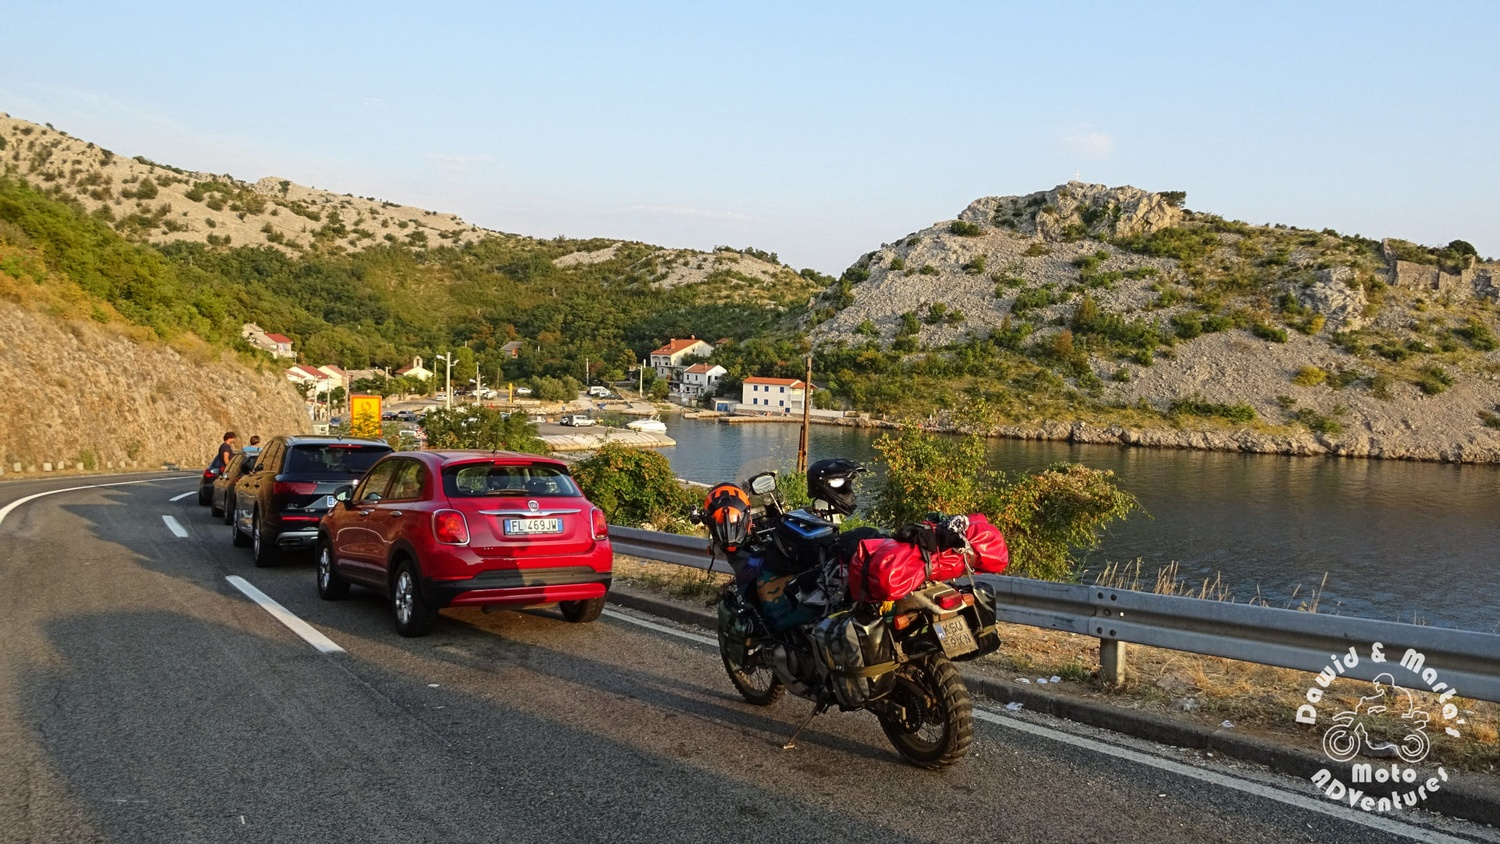 The queue to the ferry at the Prizna port - waiting to get to the Pag Island